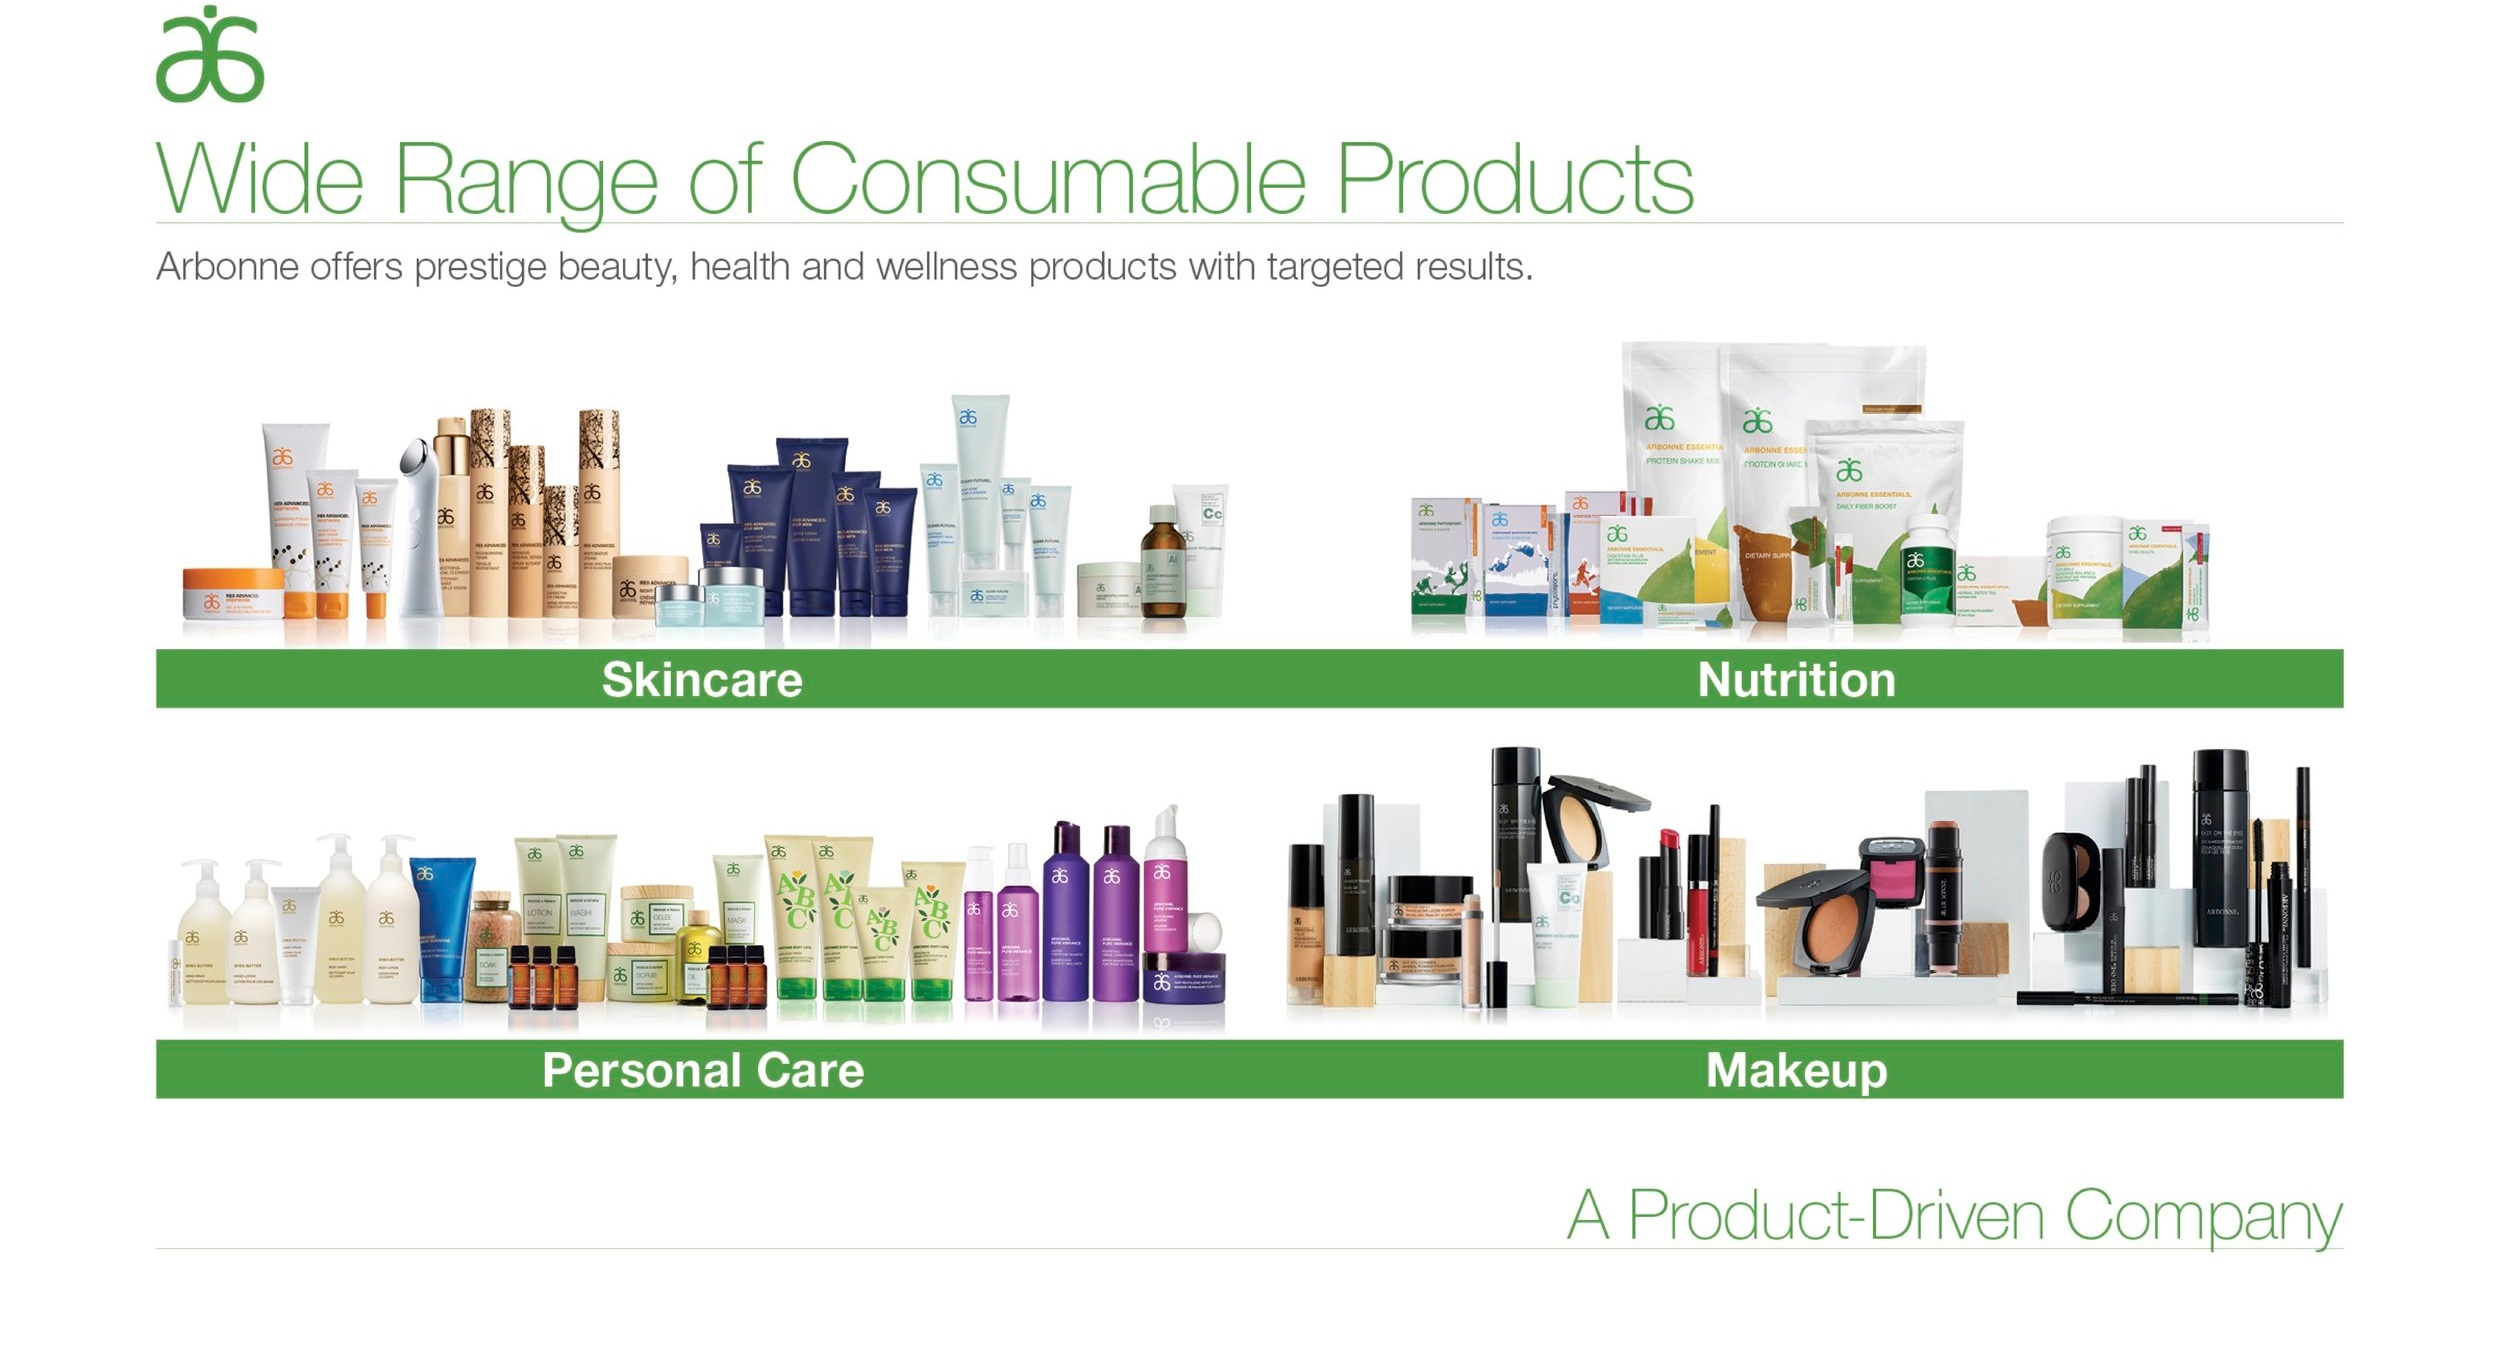 ConsumableProducts2.jpg